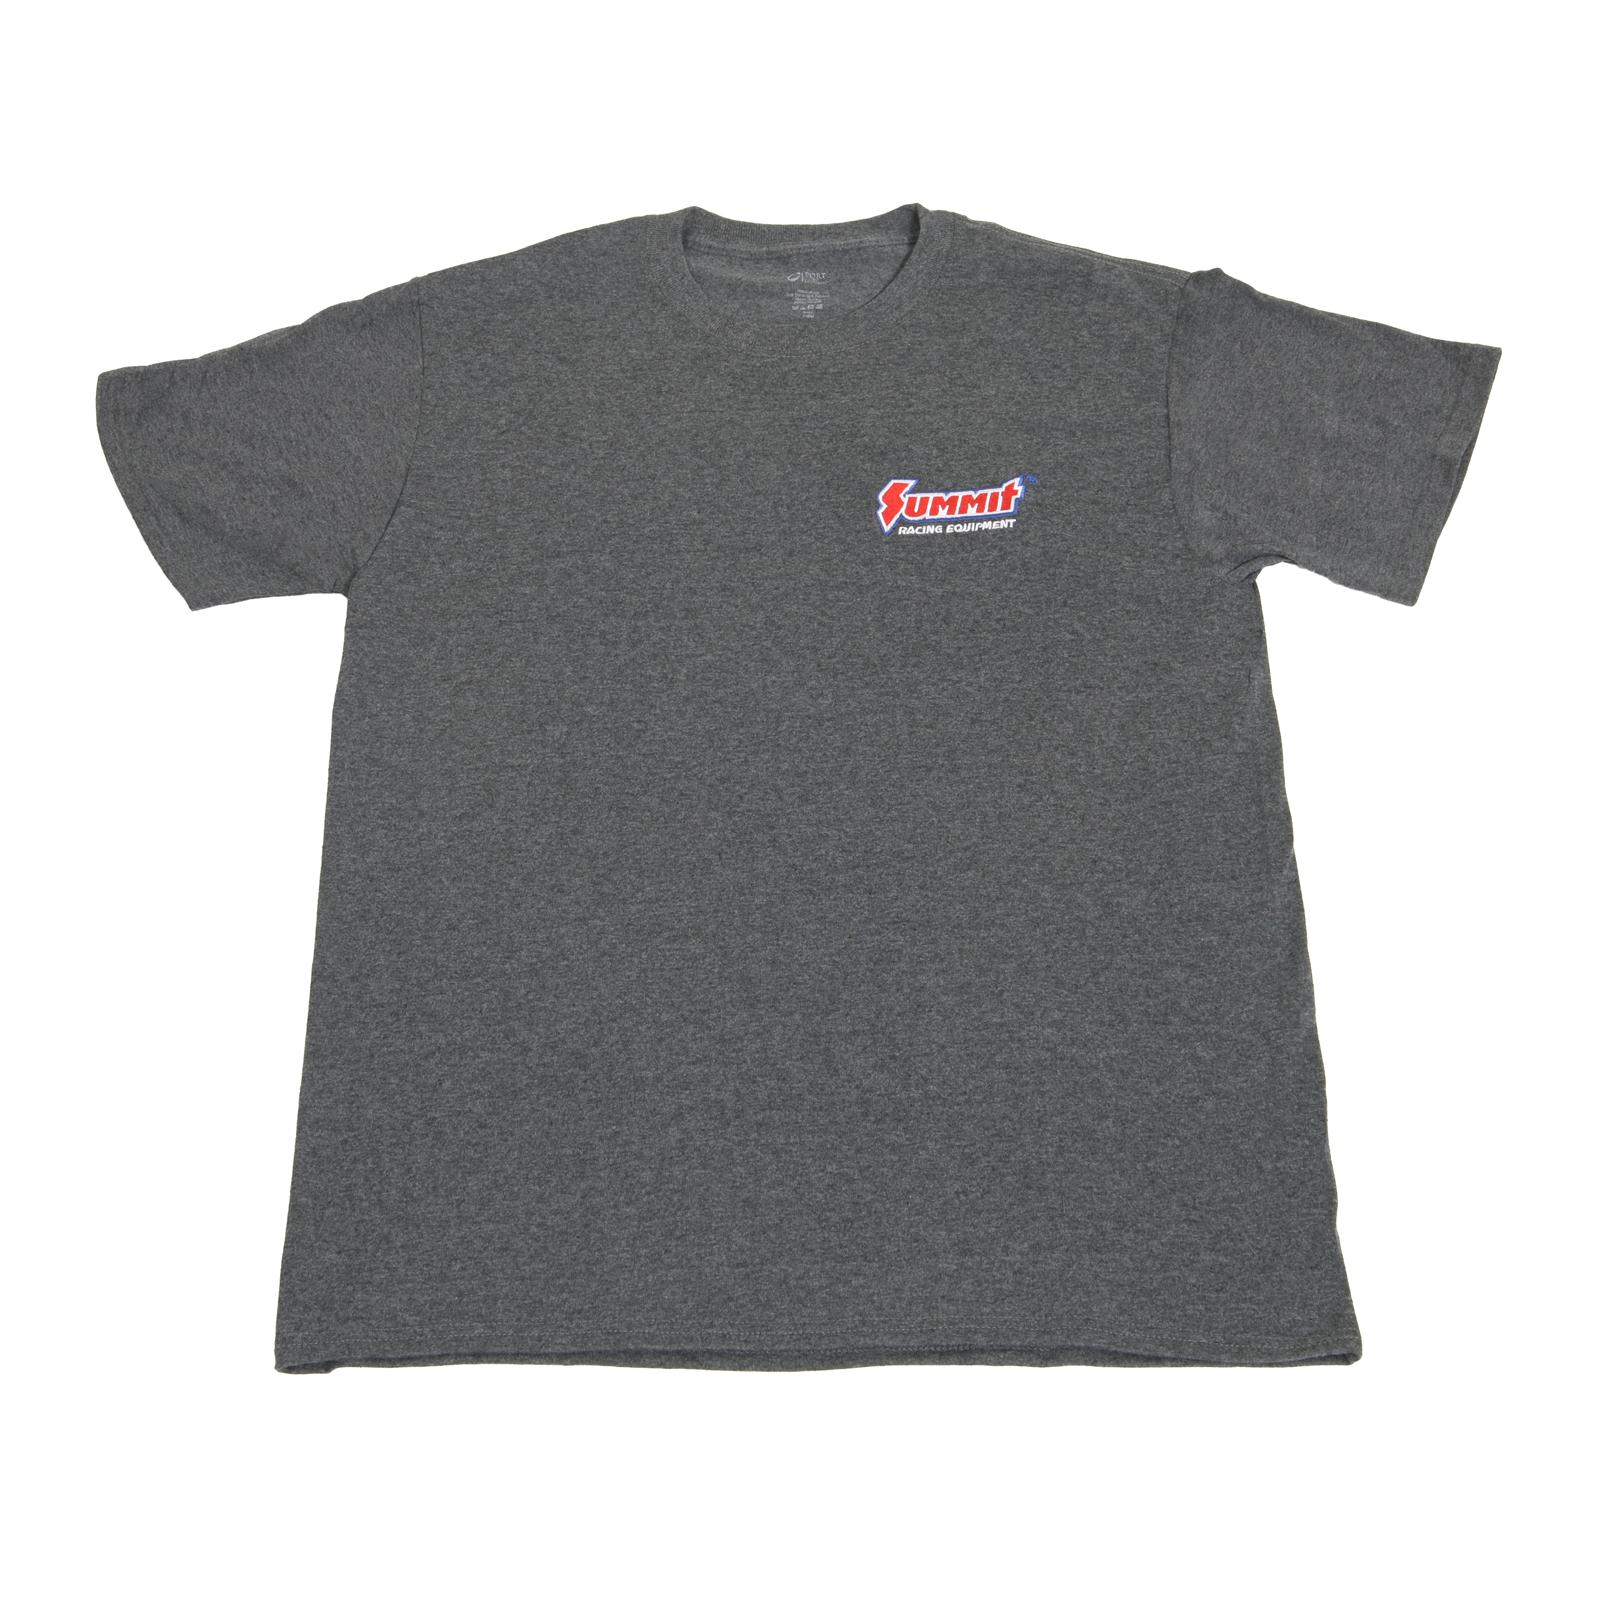 Summit racing embroidered t shirts sum p free